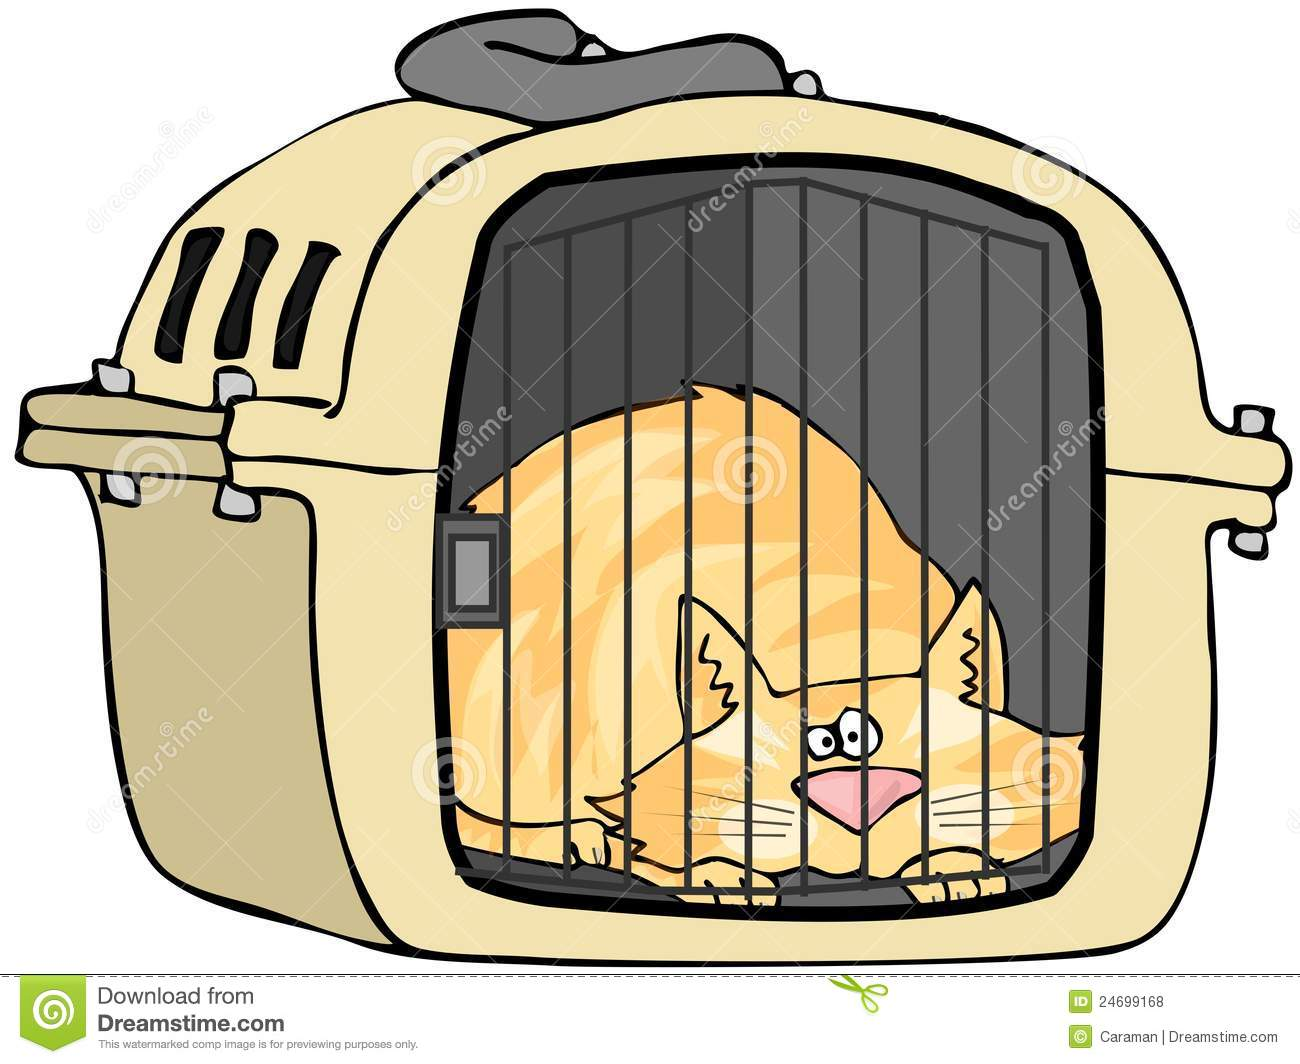 cat cage clipart - photo #1